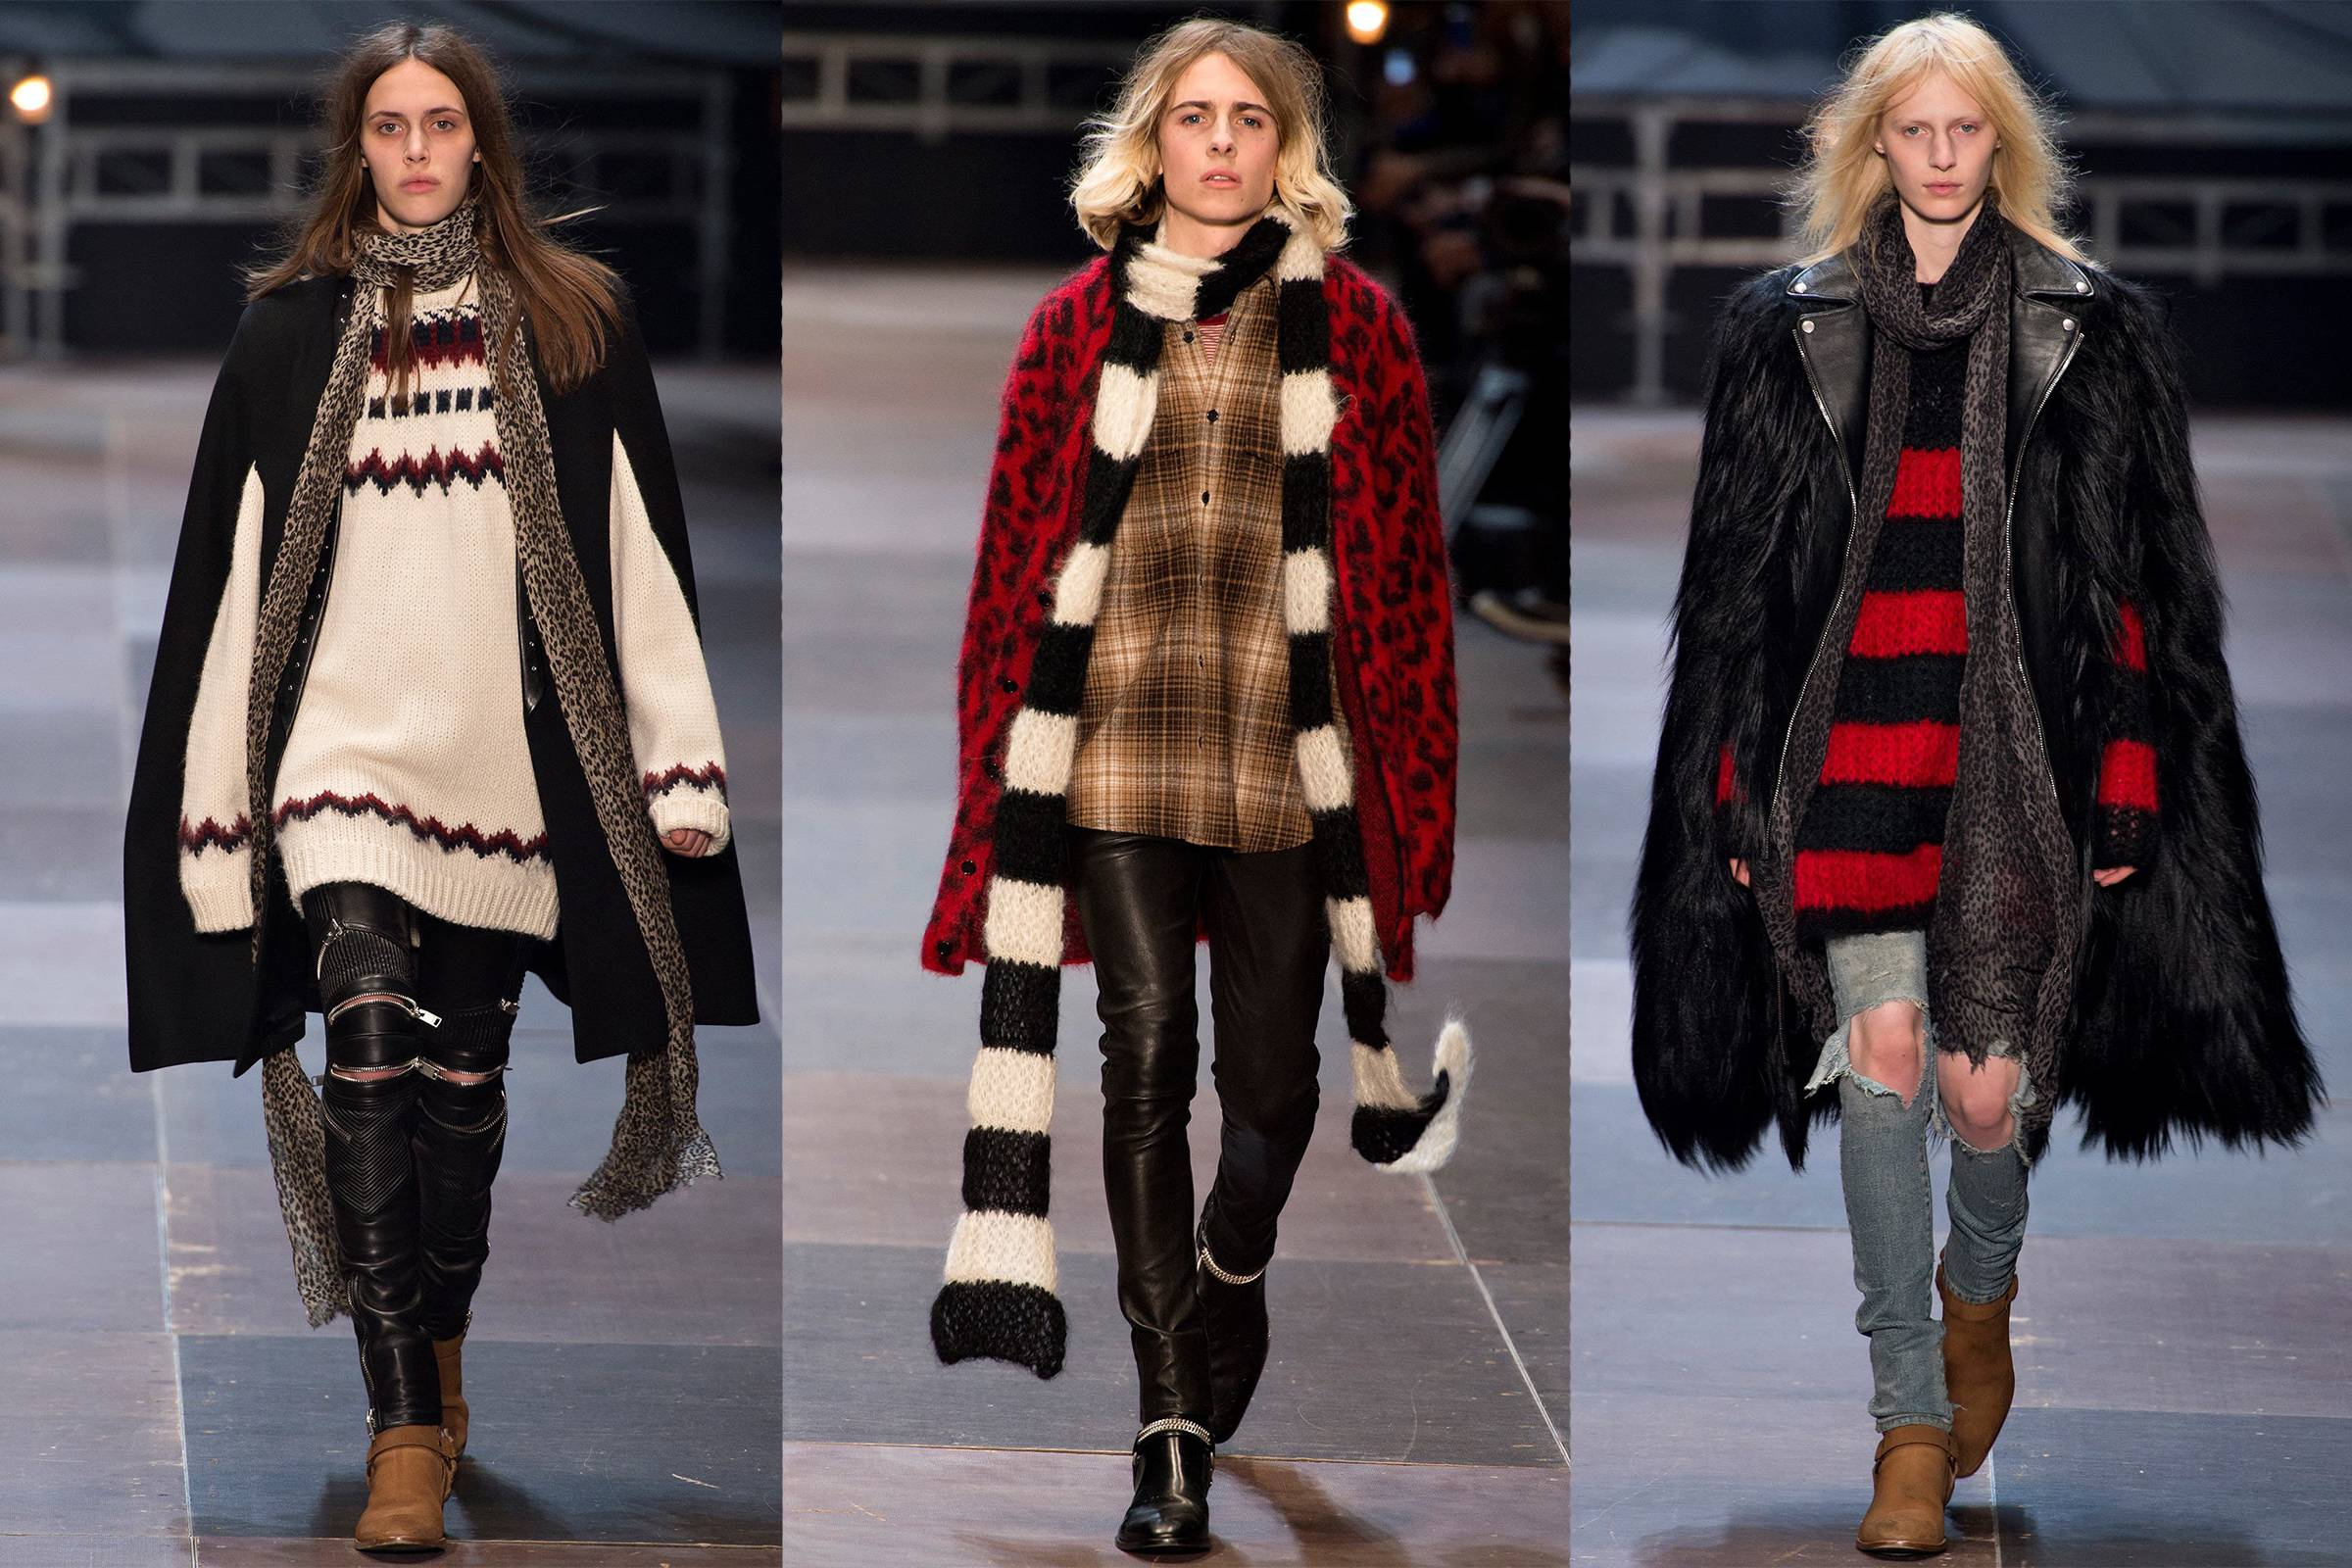 Saint Laurent Fall/Winter 2013 menswear collection (all models wearing the Wyatt boot)